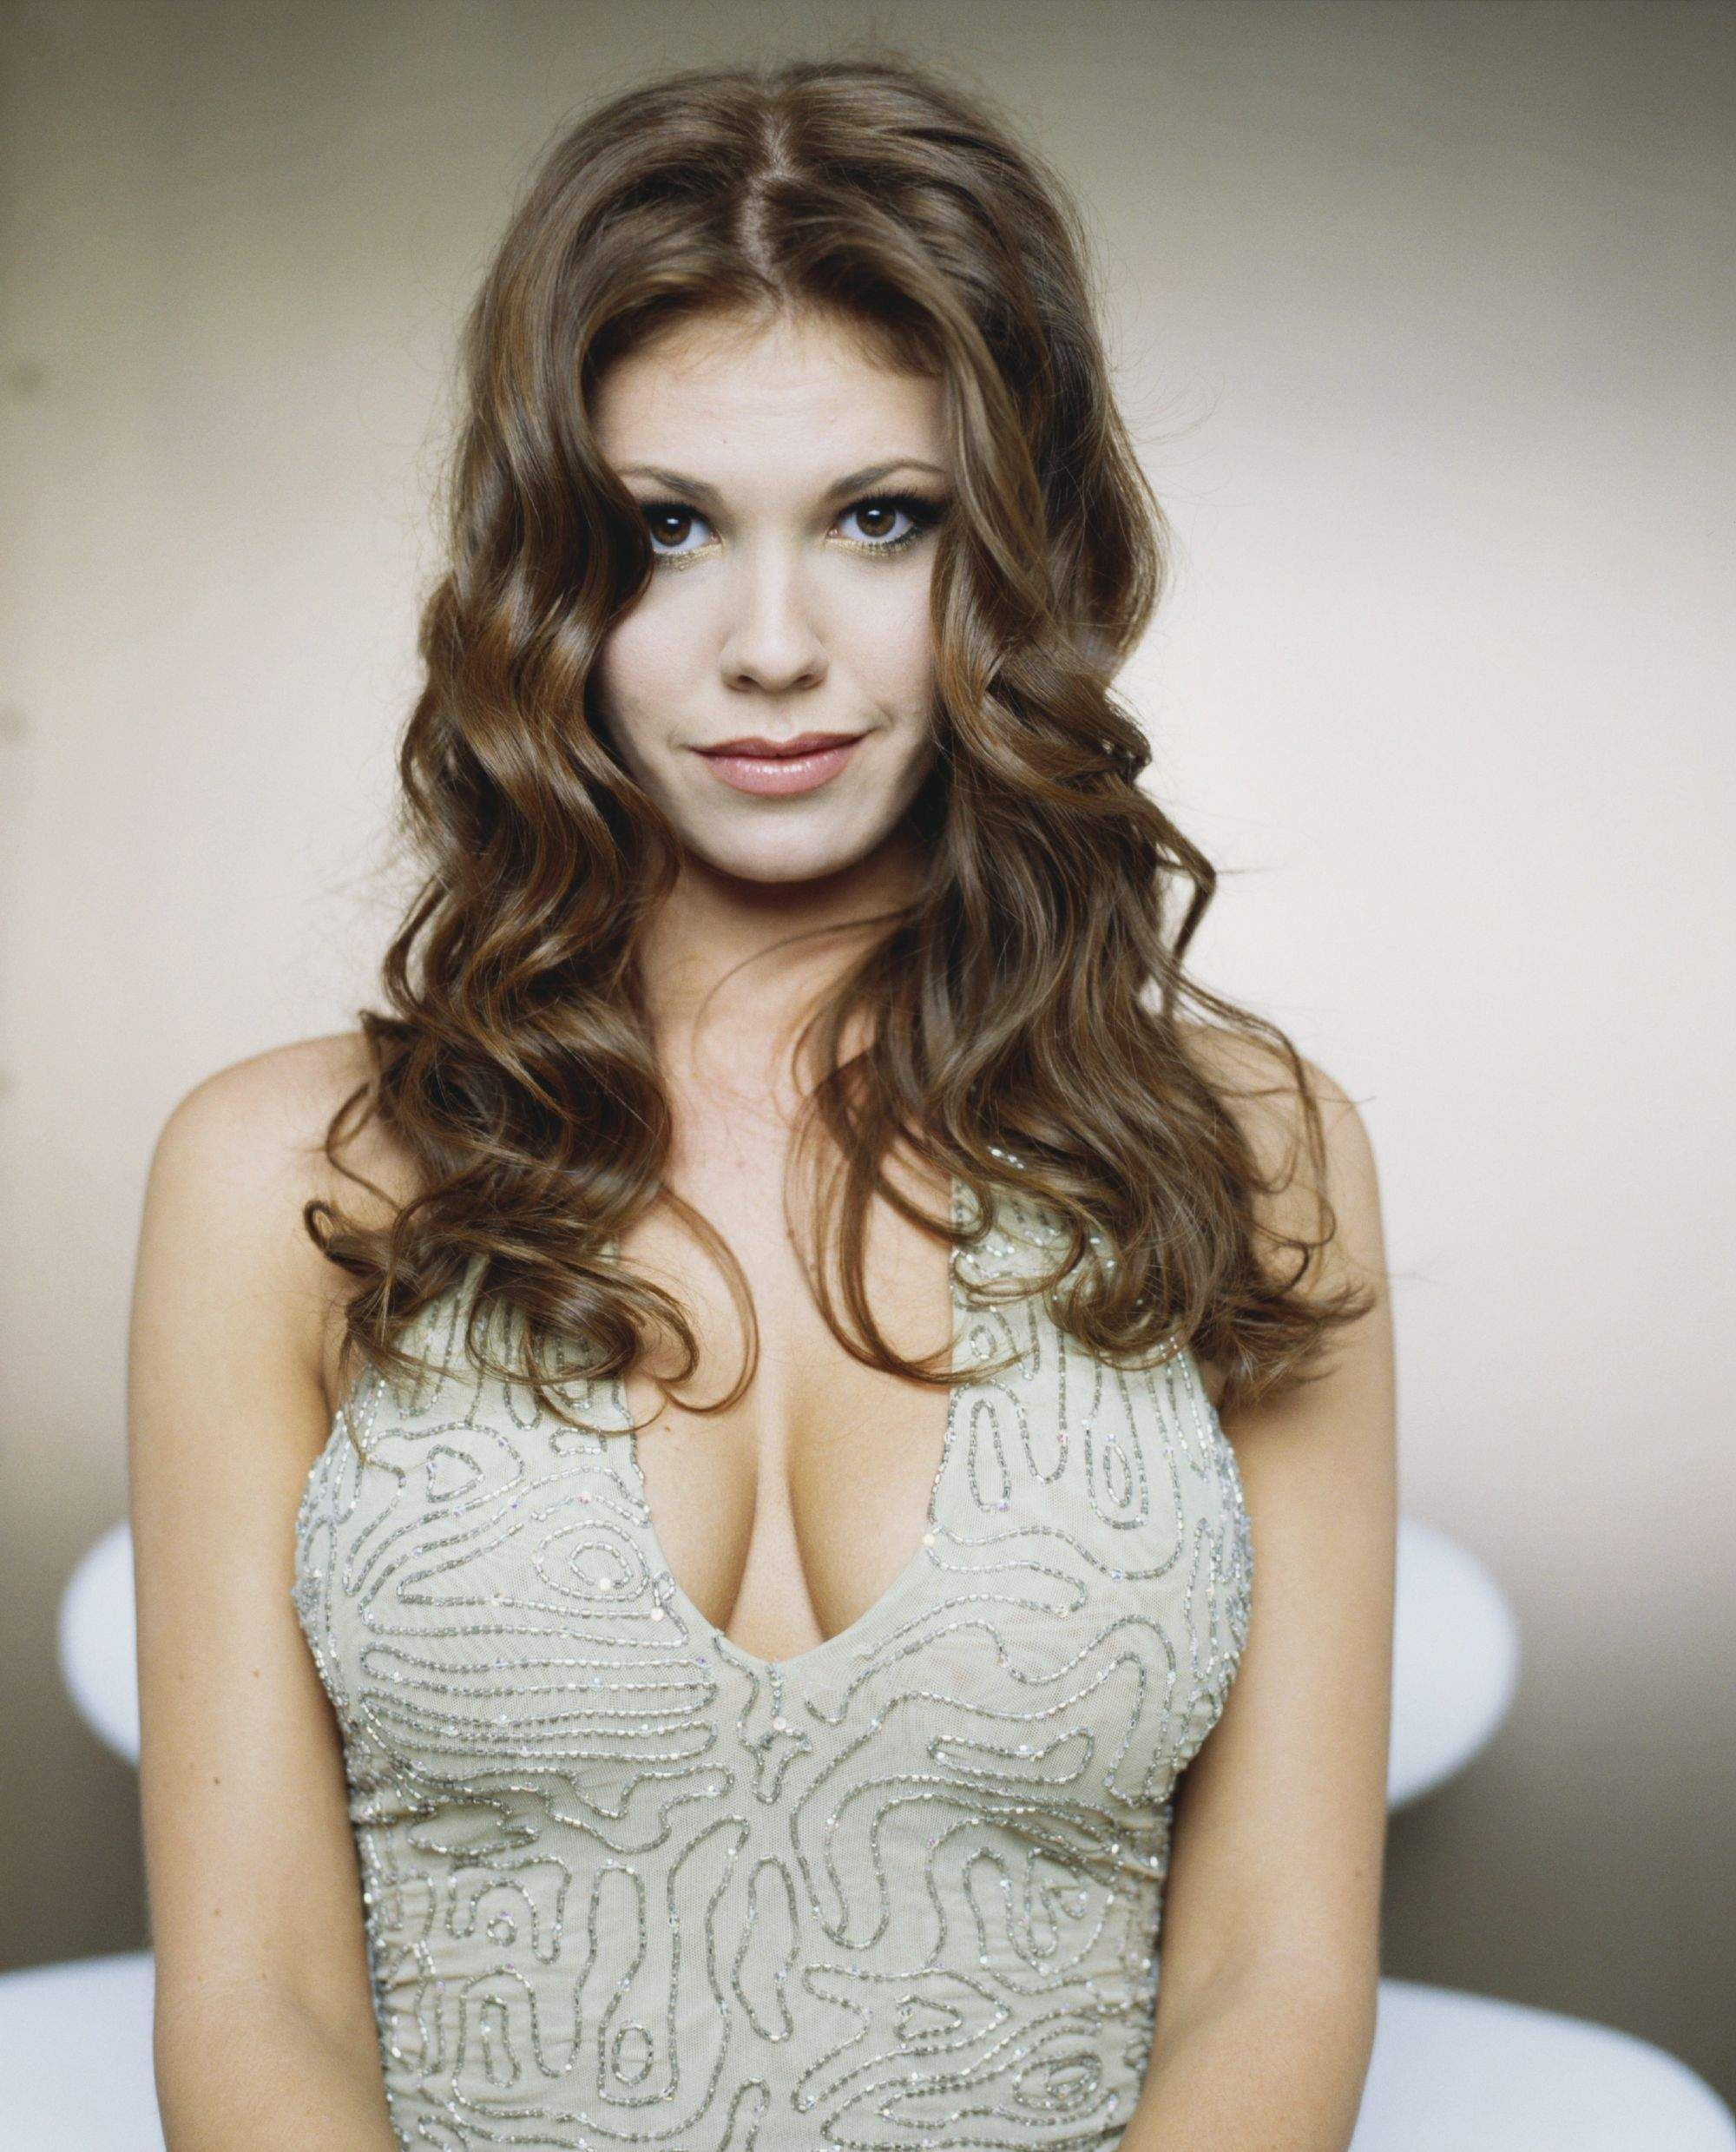 Cleavage Nikki Cox naked (78 photo), Tits, Bikini, Instagram, butt 2020